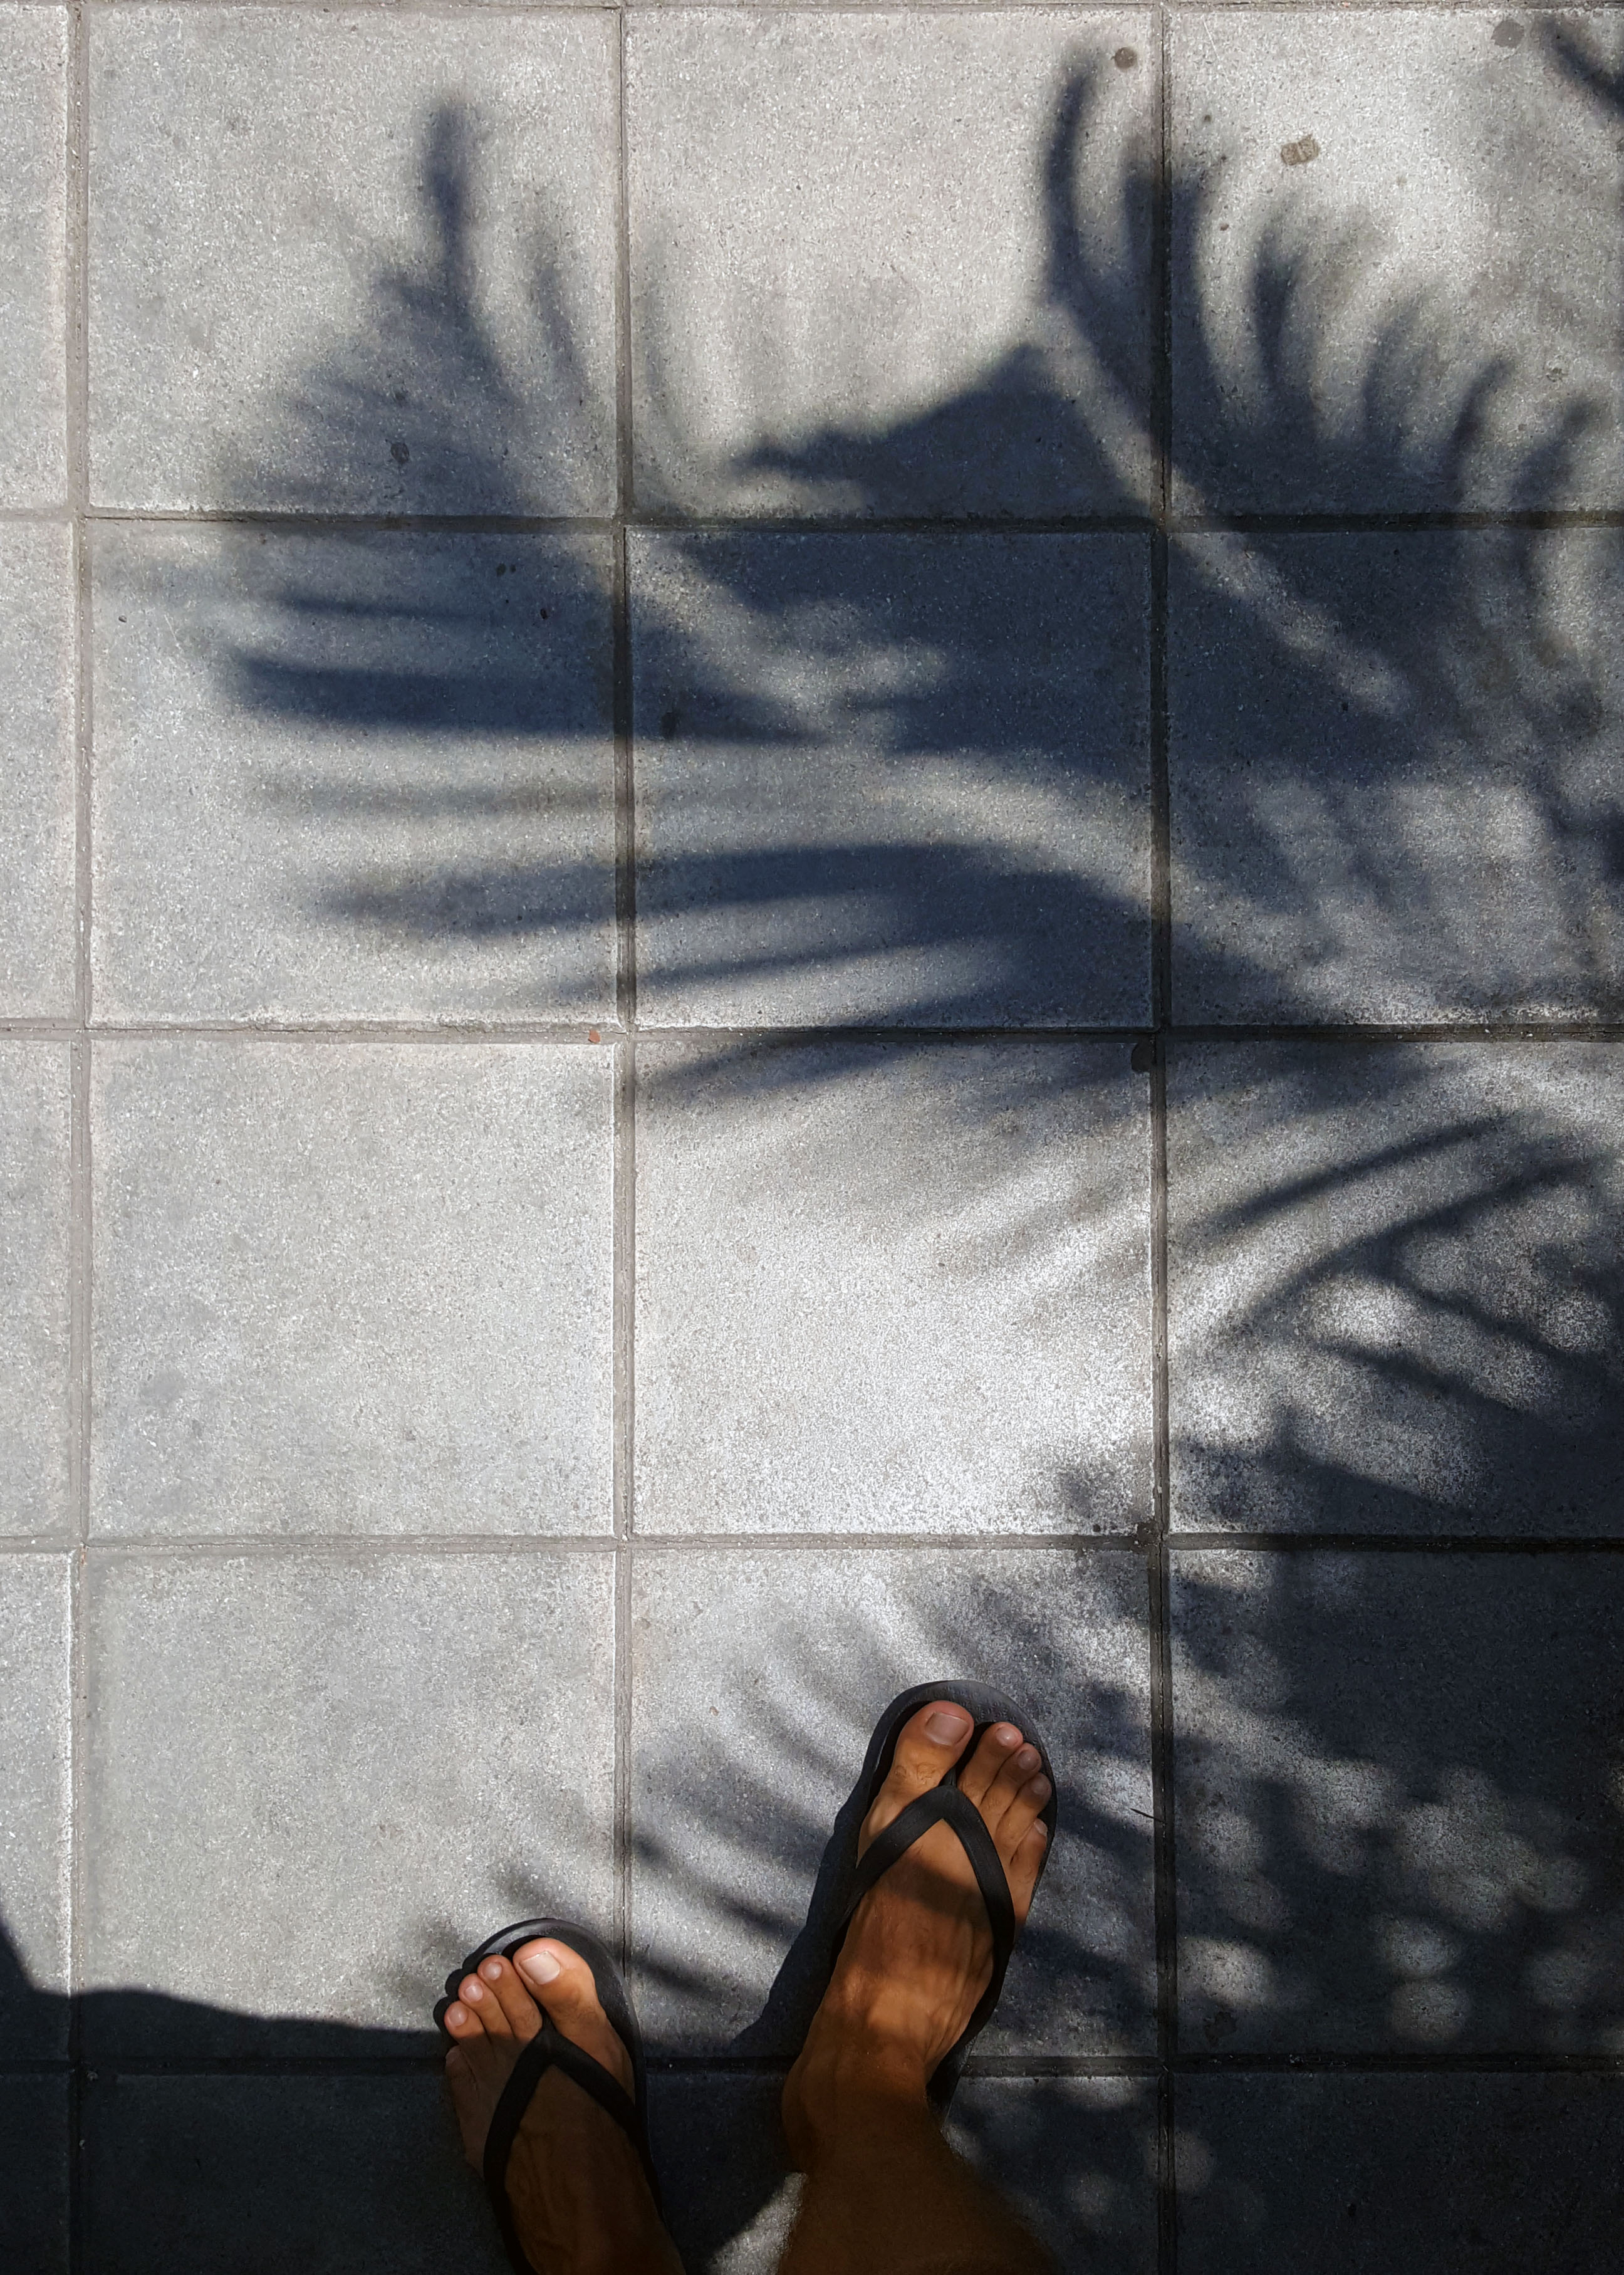 Shadow of a palmtree on the sidewalk